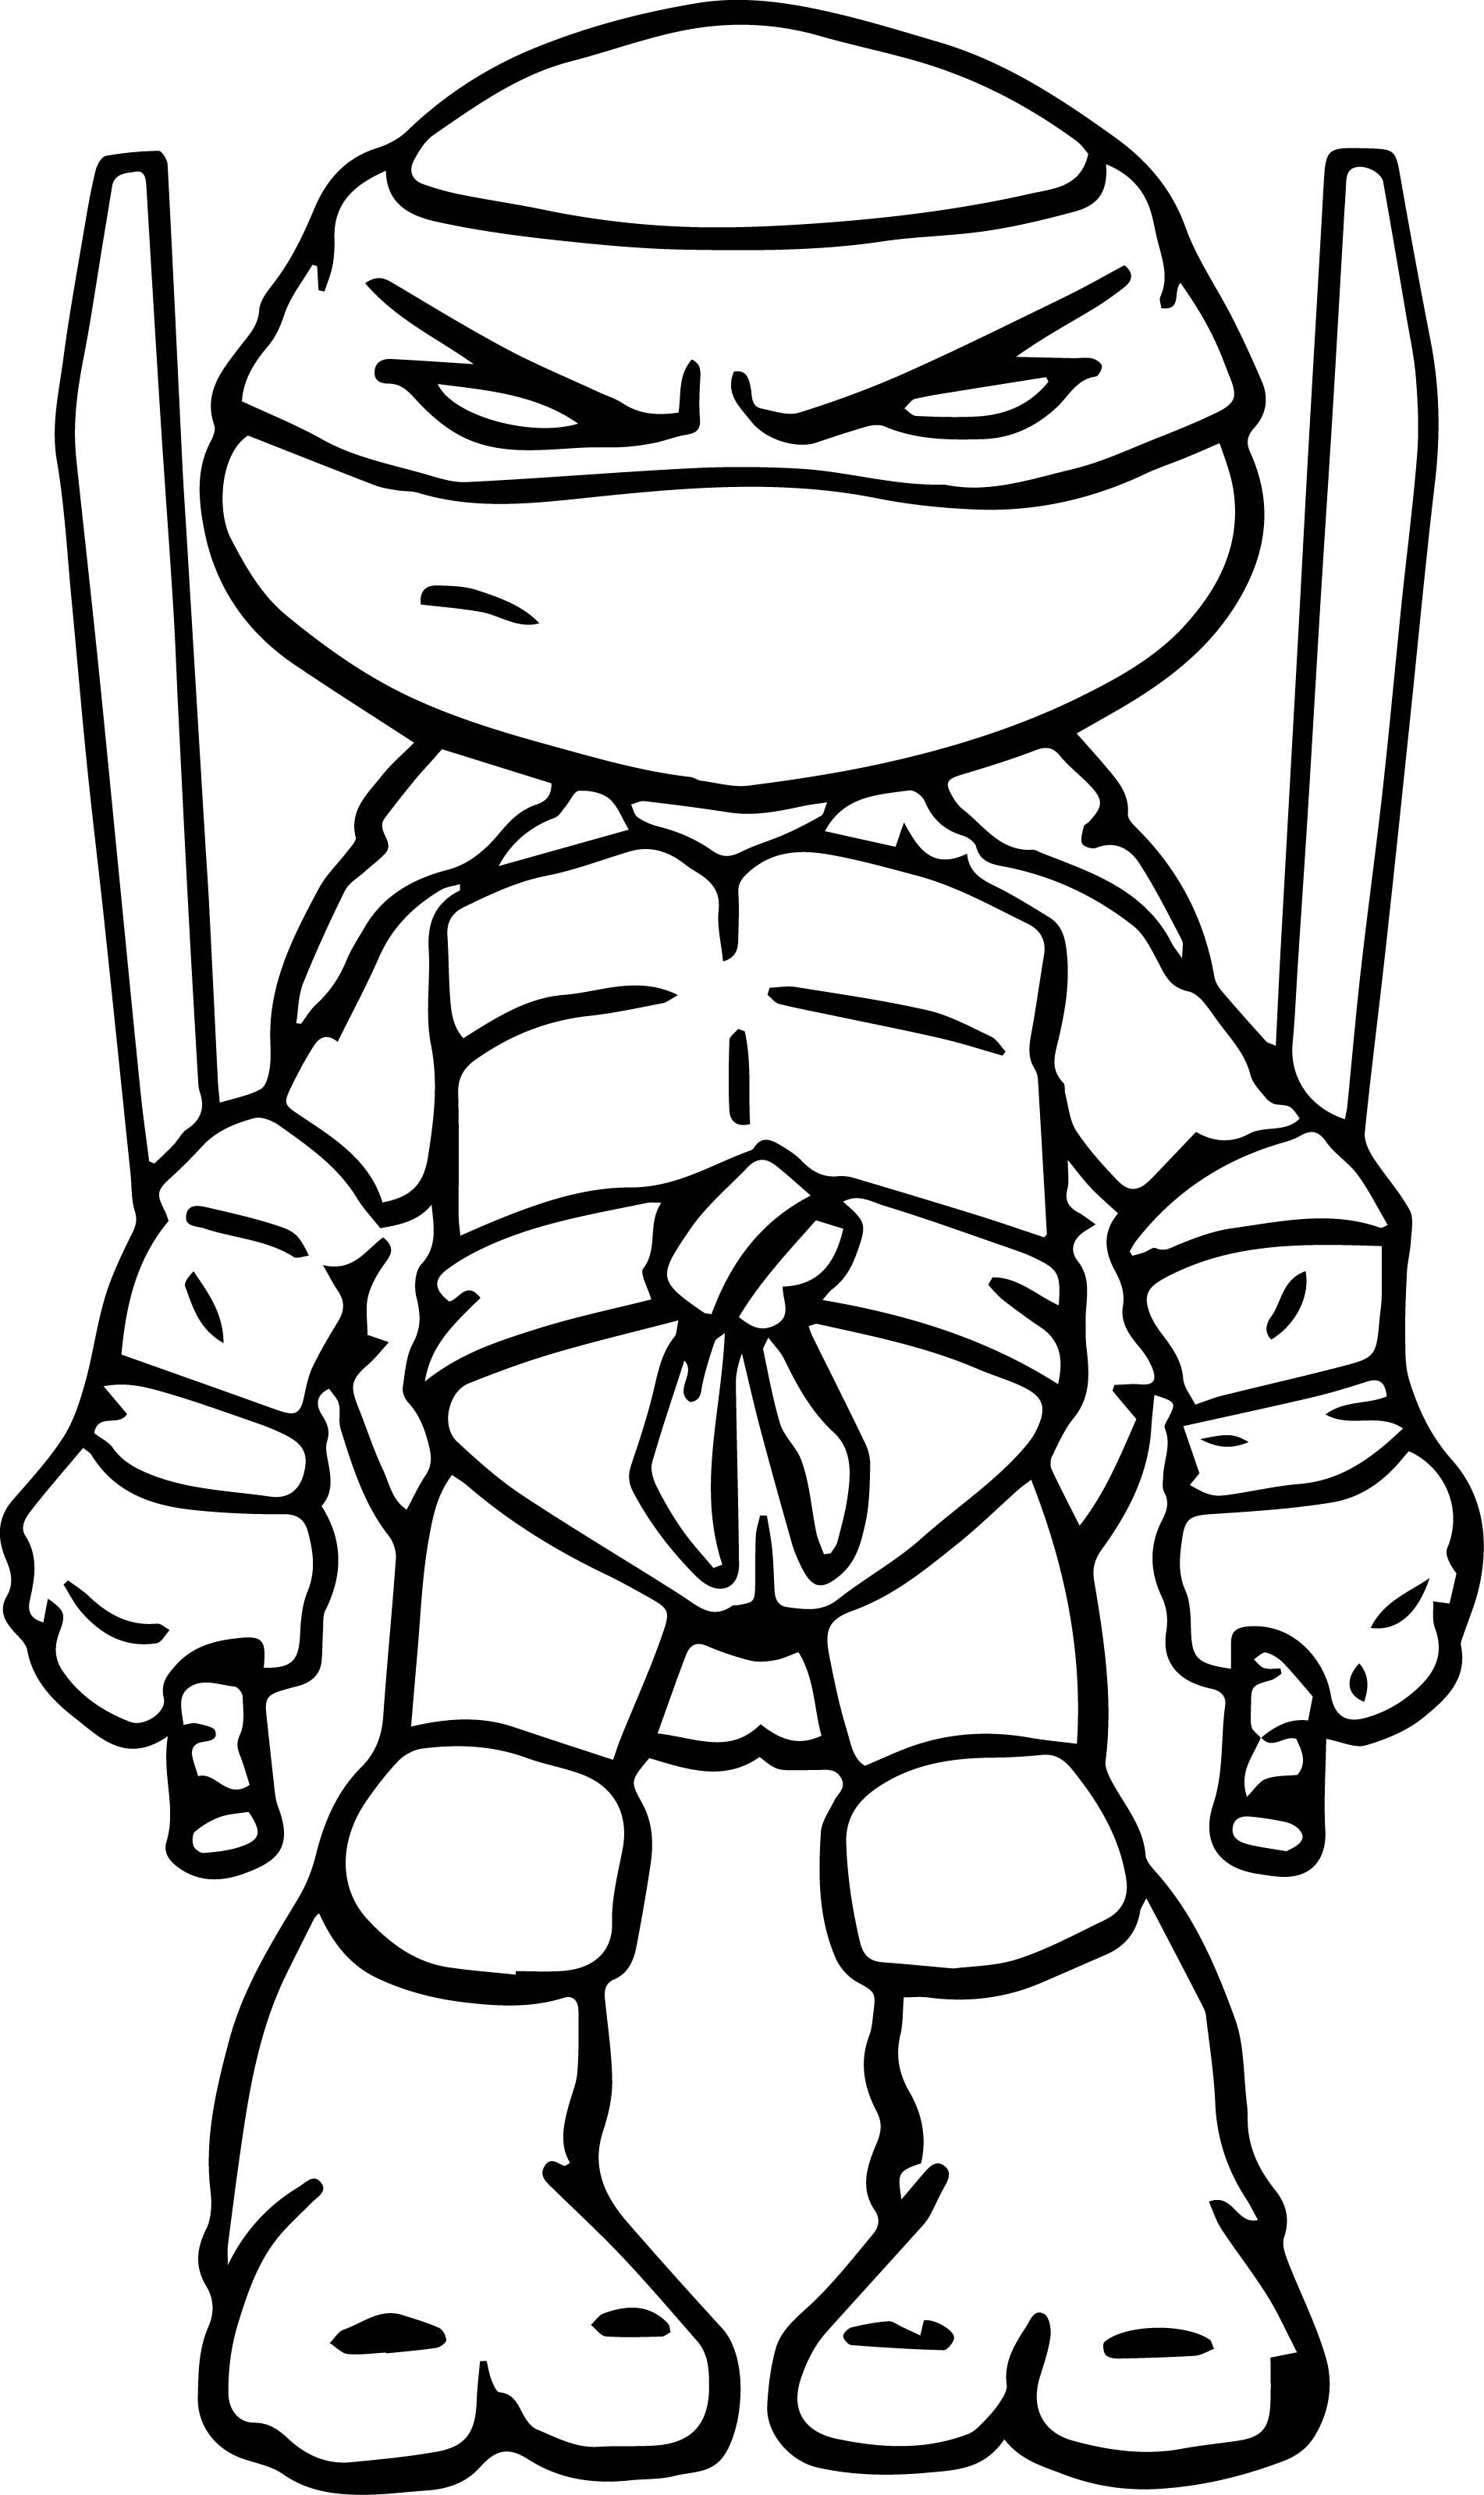 Ninja-Turtles-Art-Coloring-Page | TMNT Party | Pinterest | Ninja ...